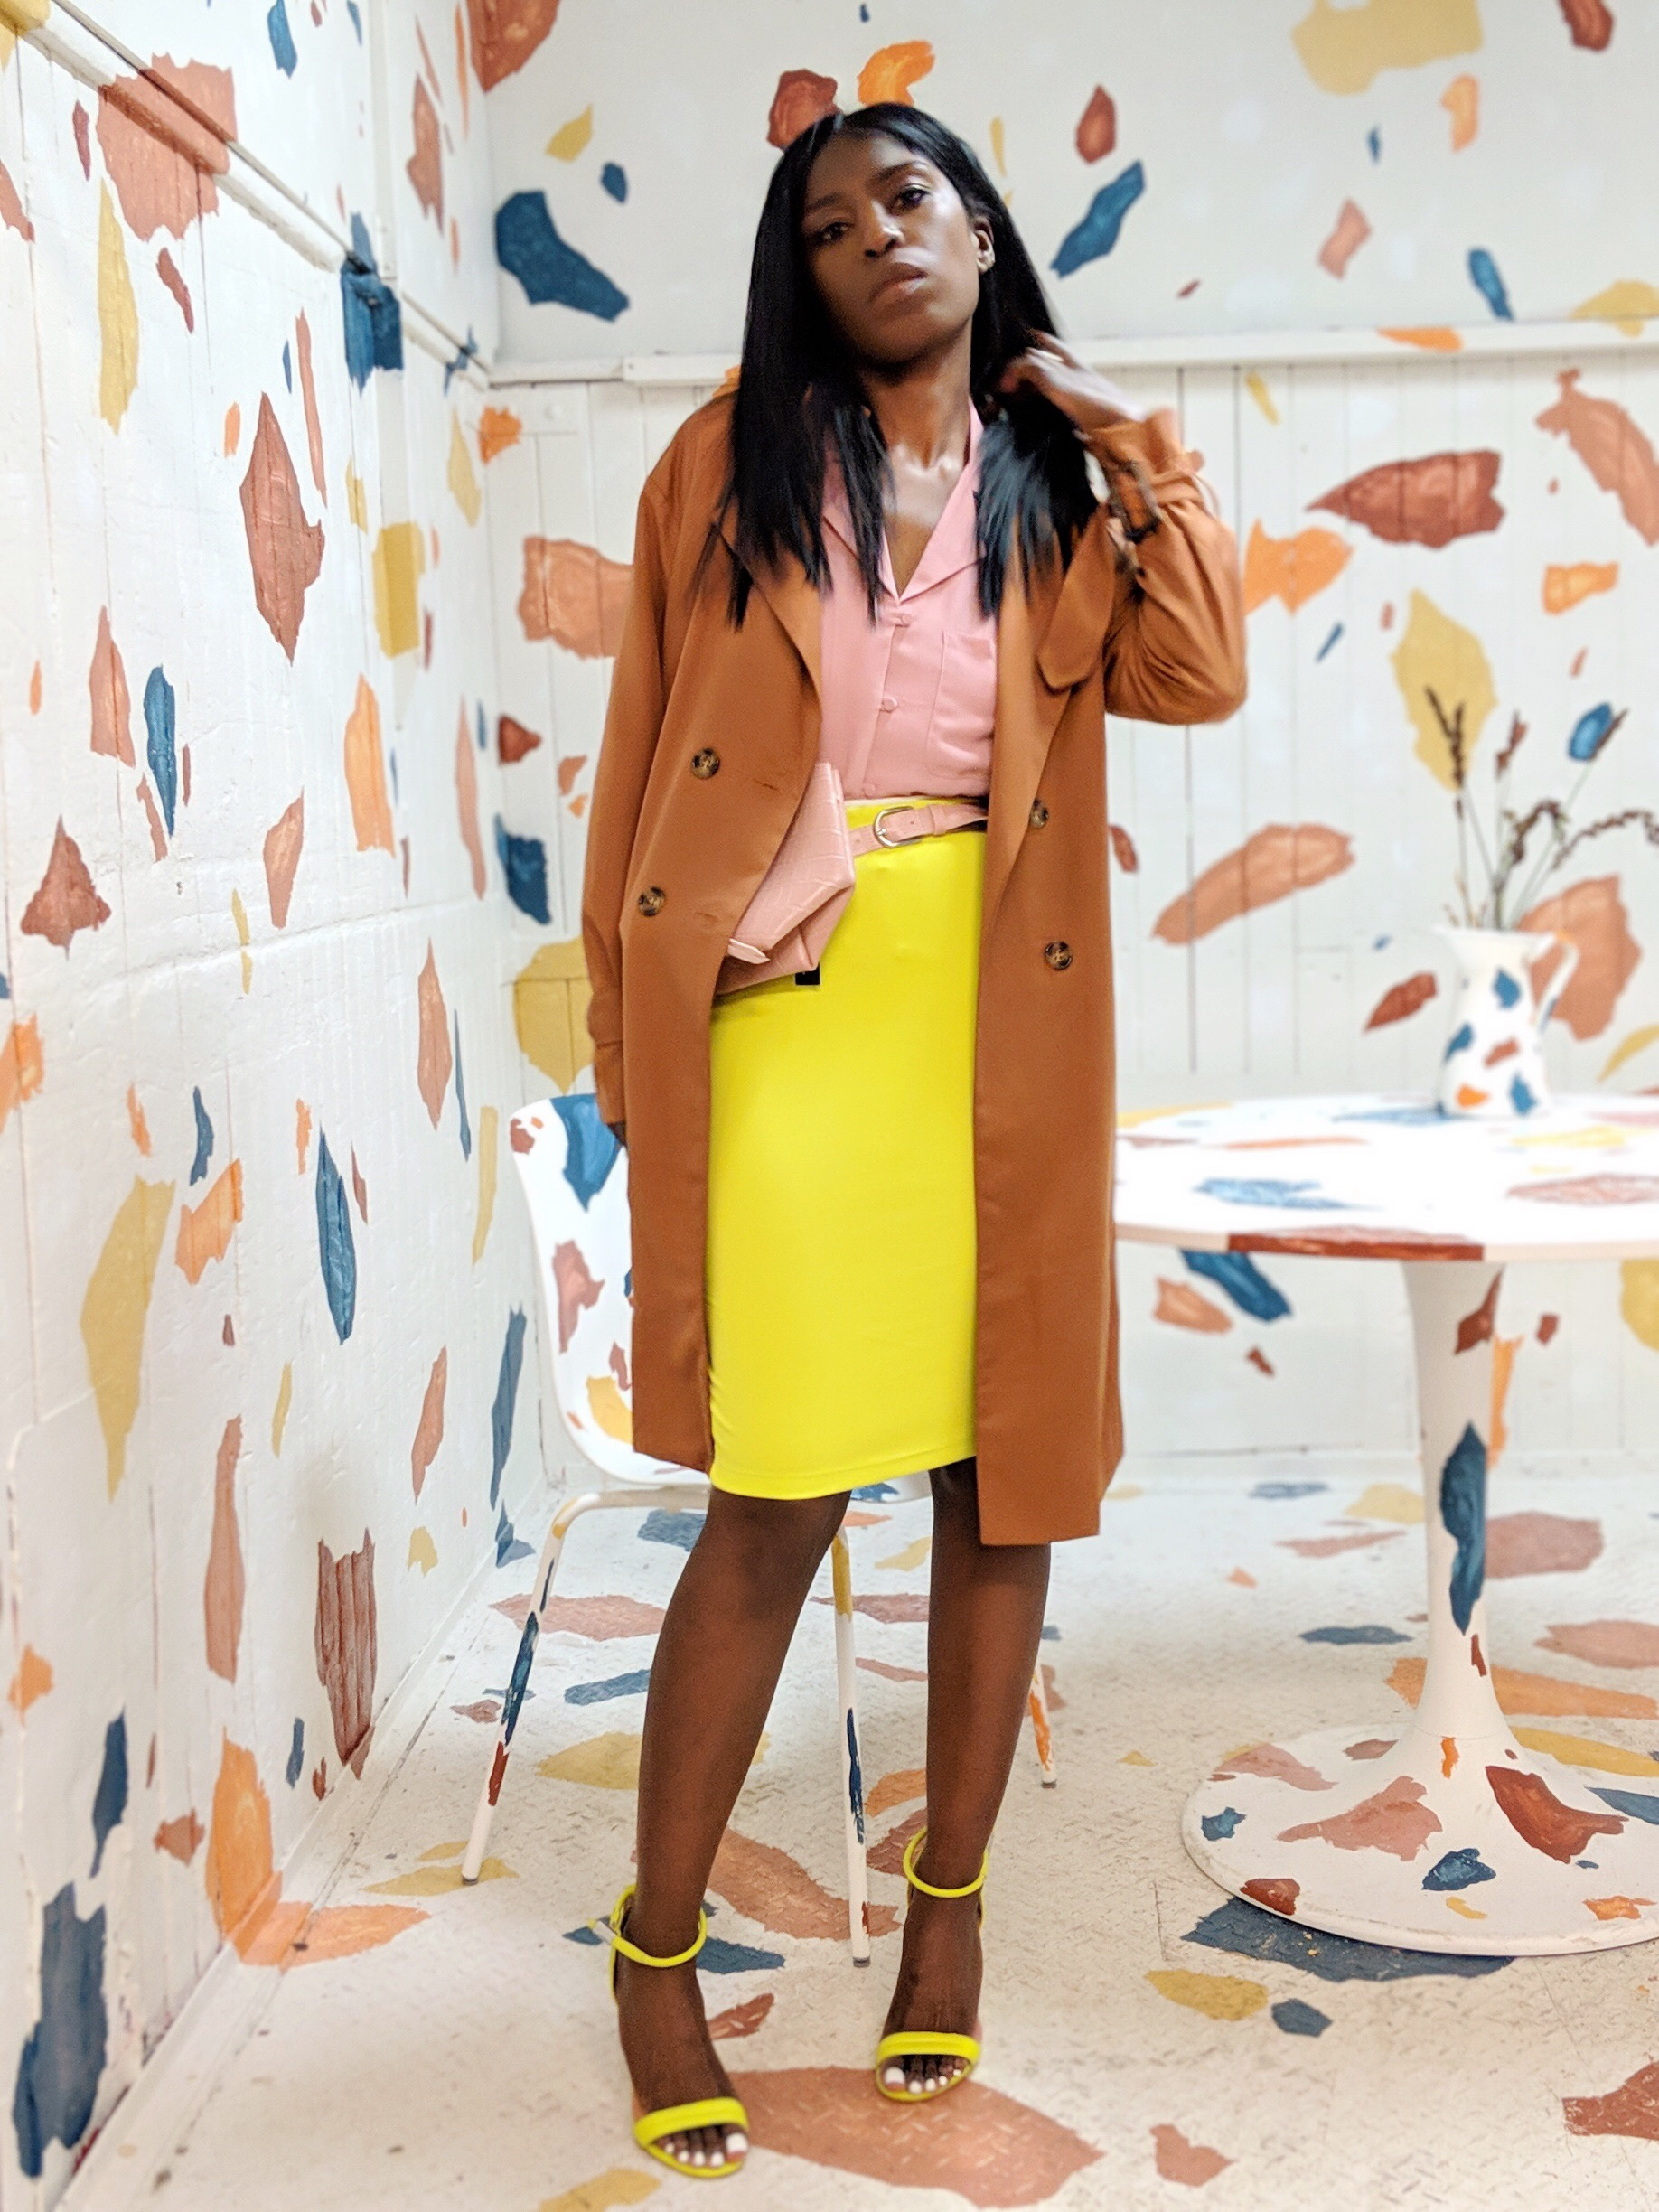 734684d4ef327 color block clothing trend - pink shirt and yellow skirt with trench coat